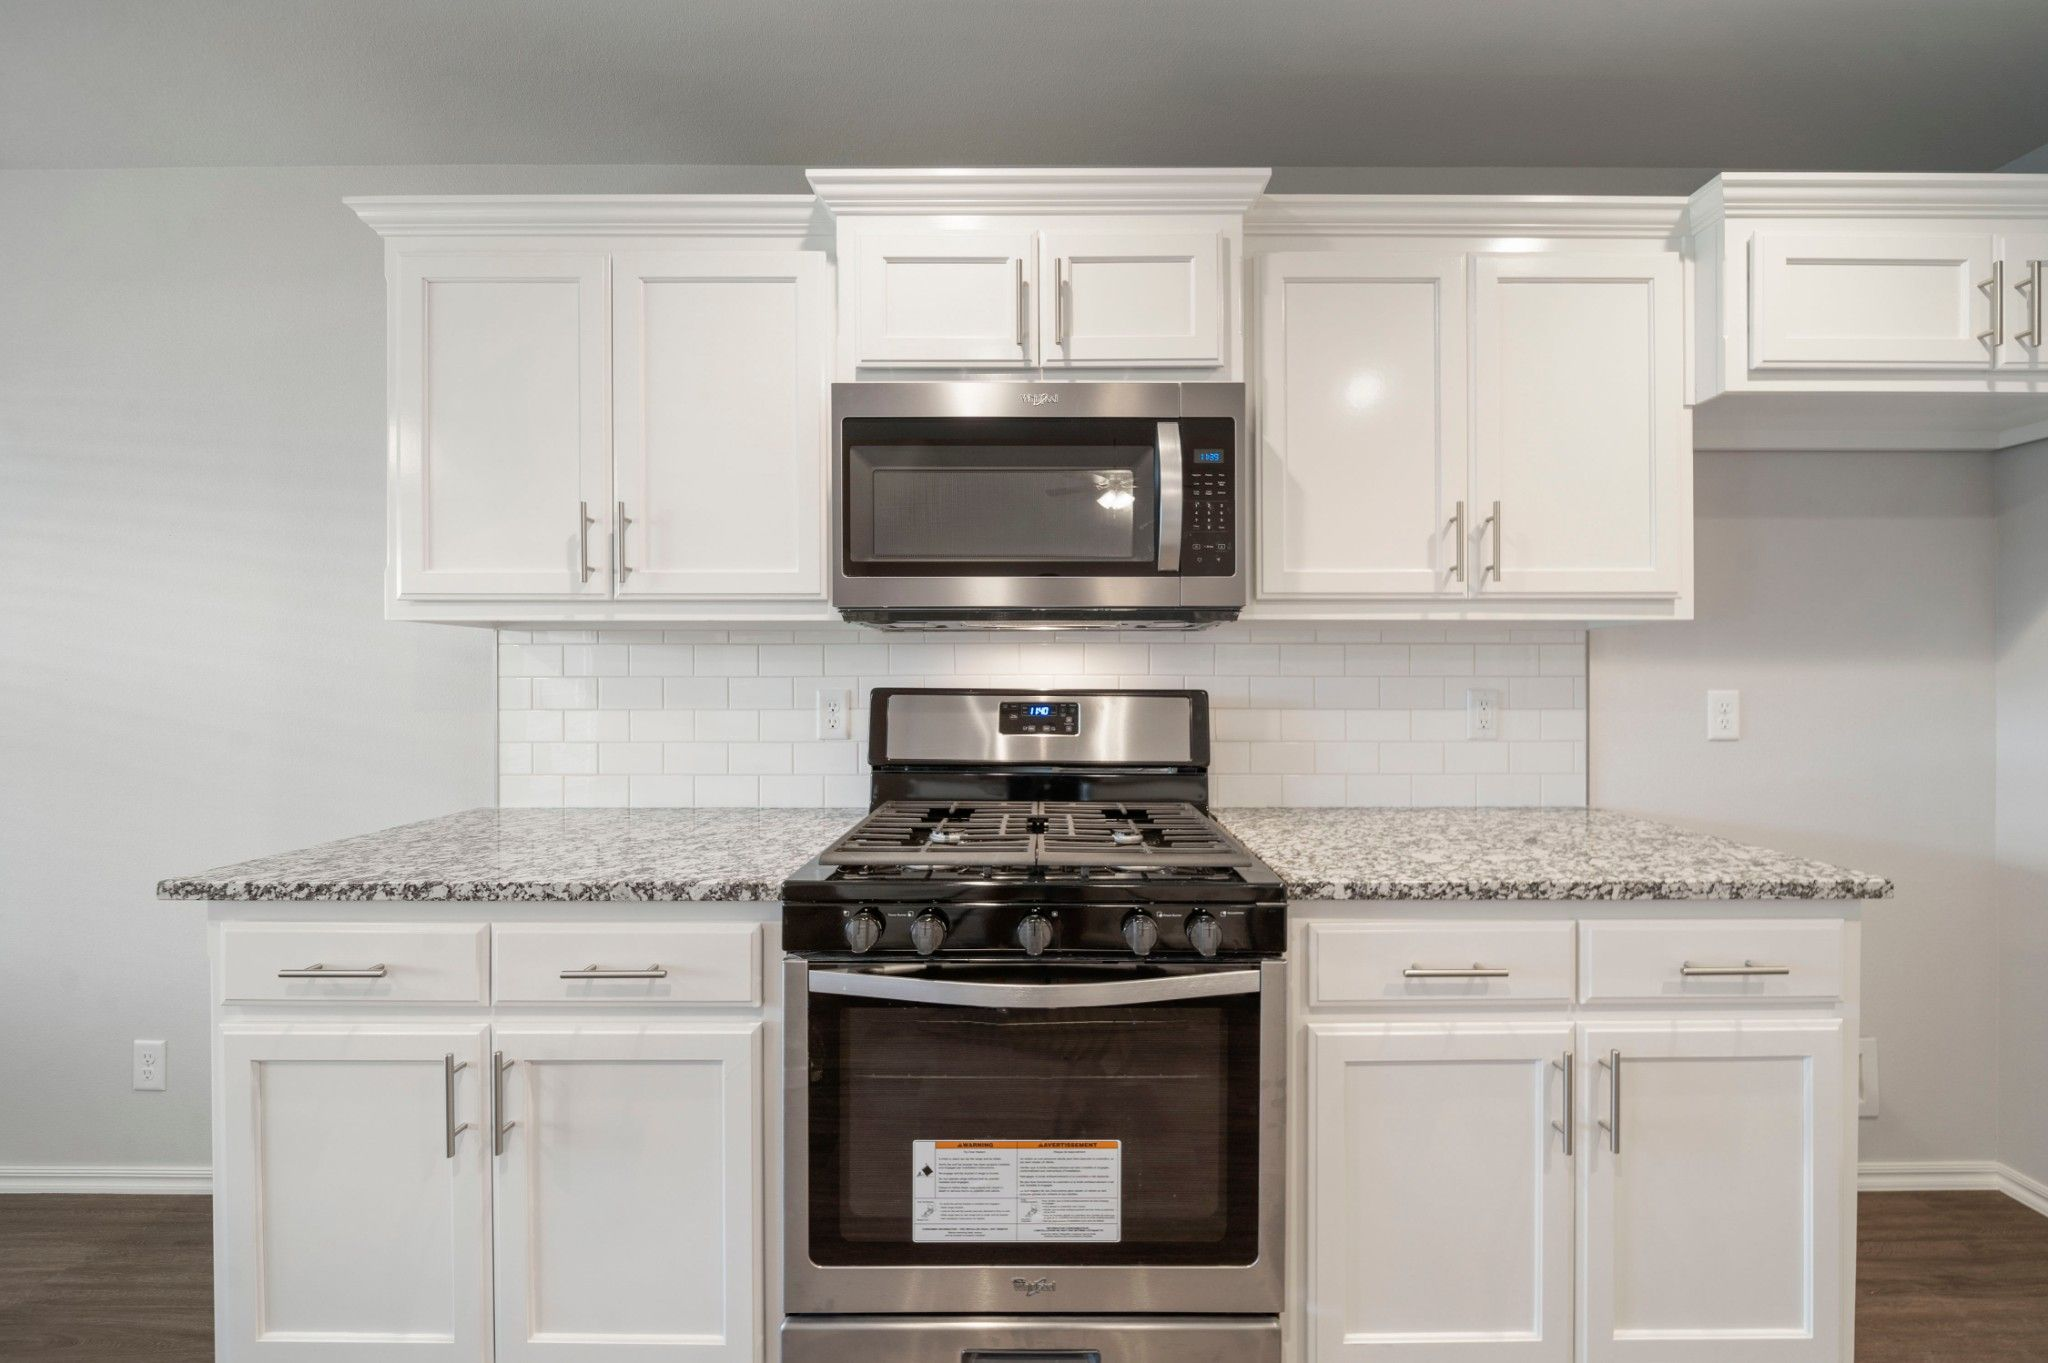 Kitchen featured in the Denver By Capital Homes in Tulsa, OK